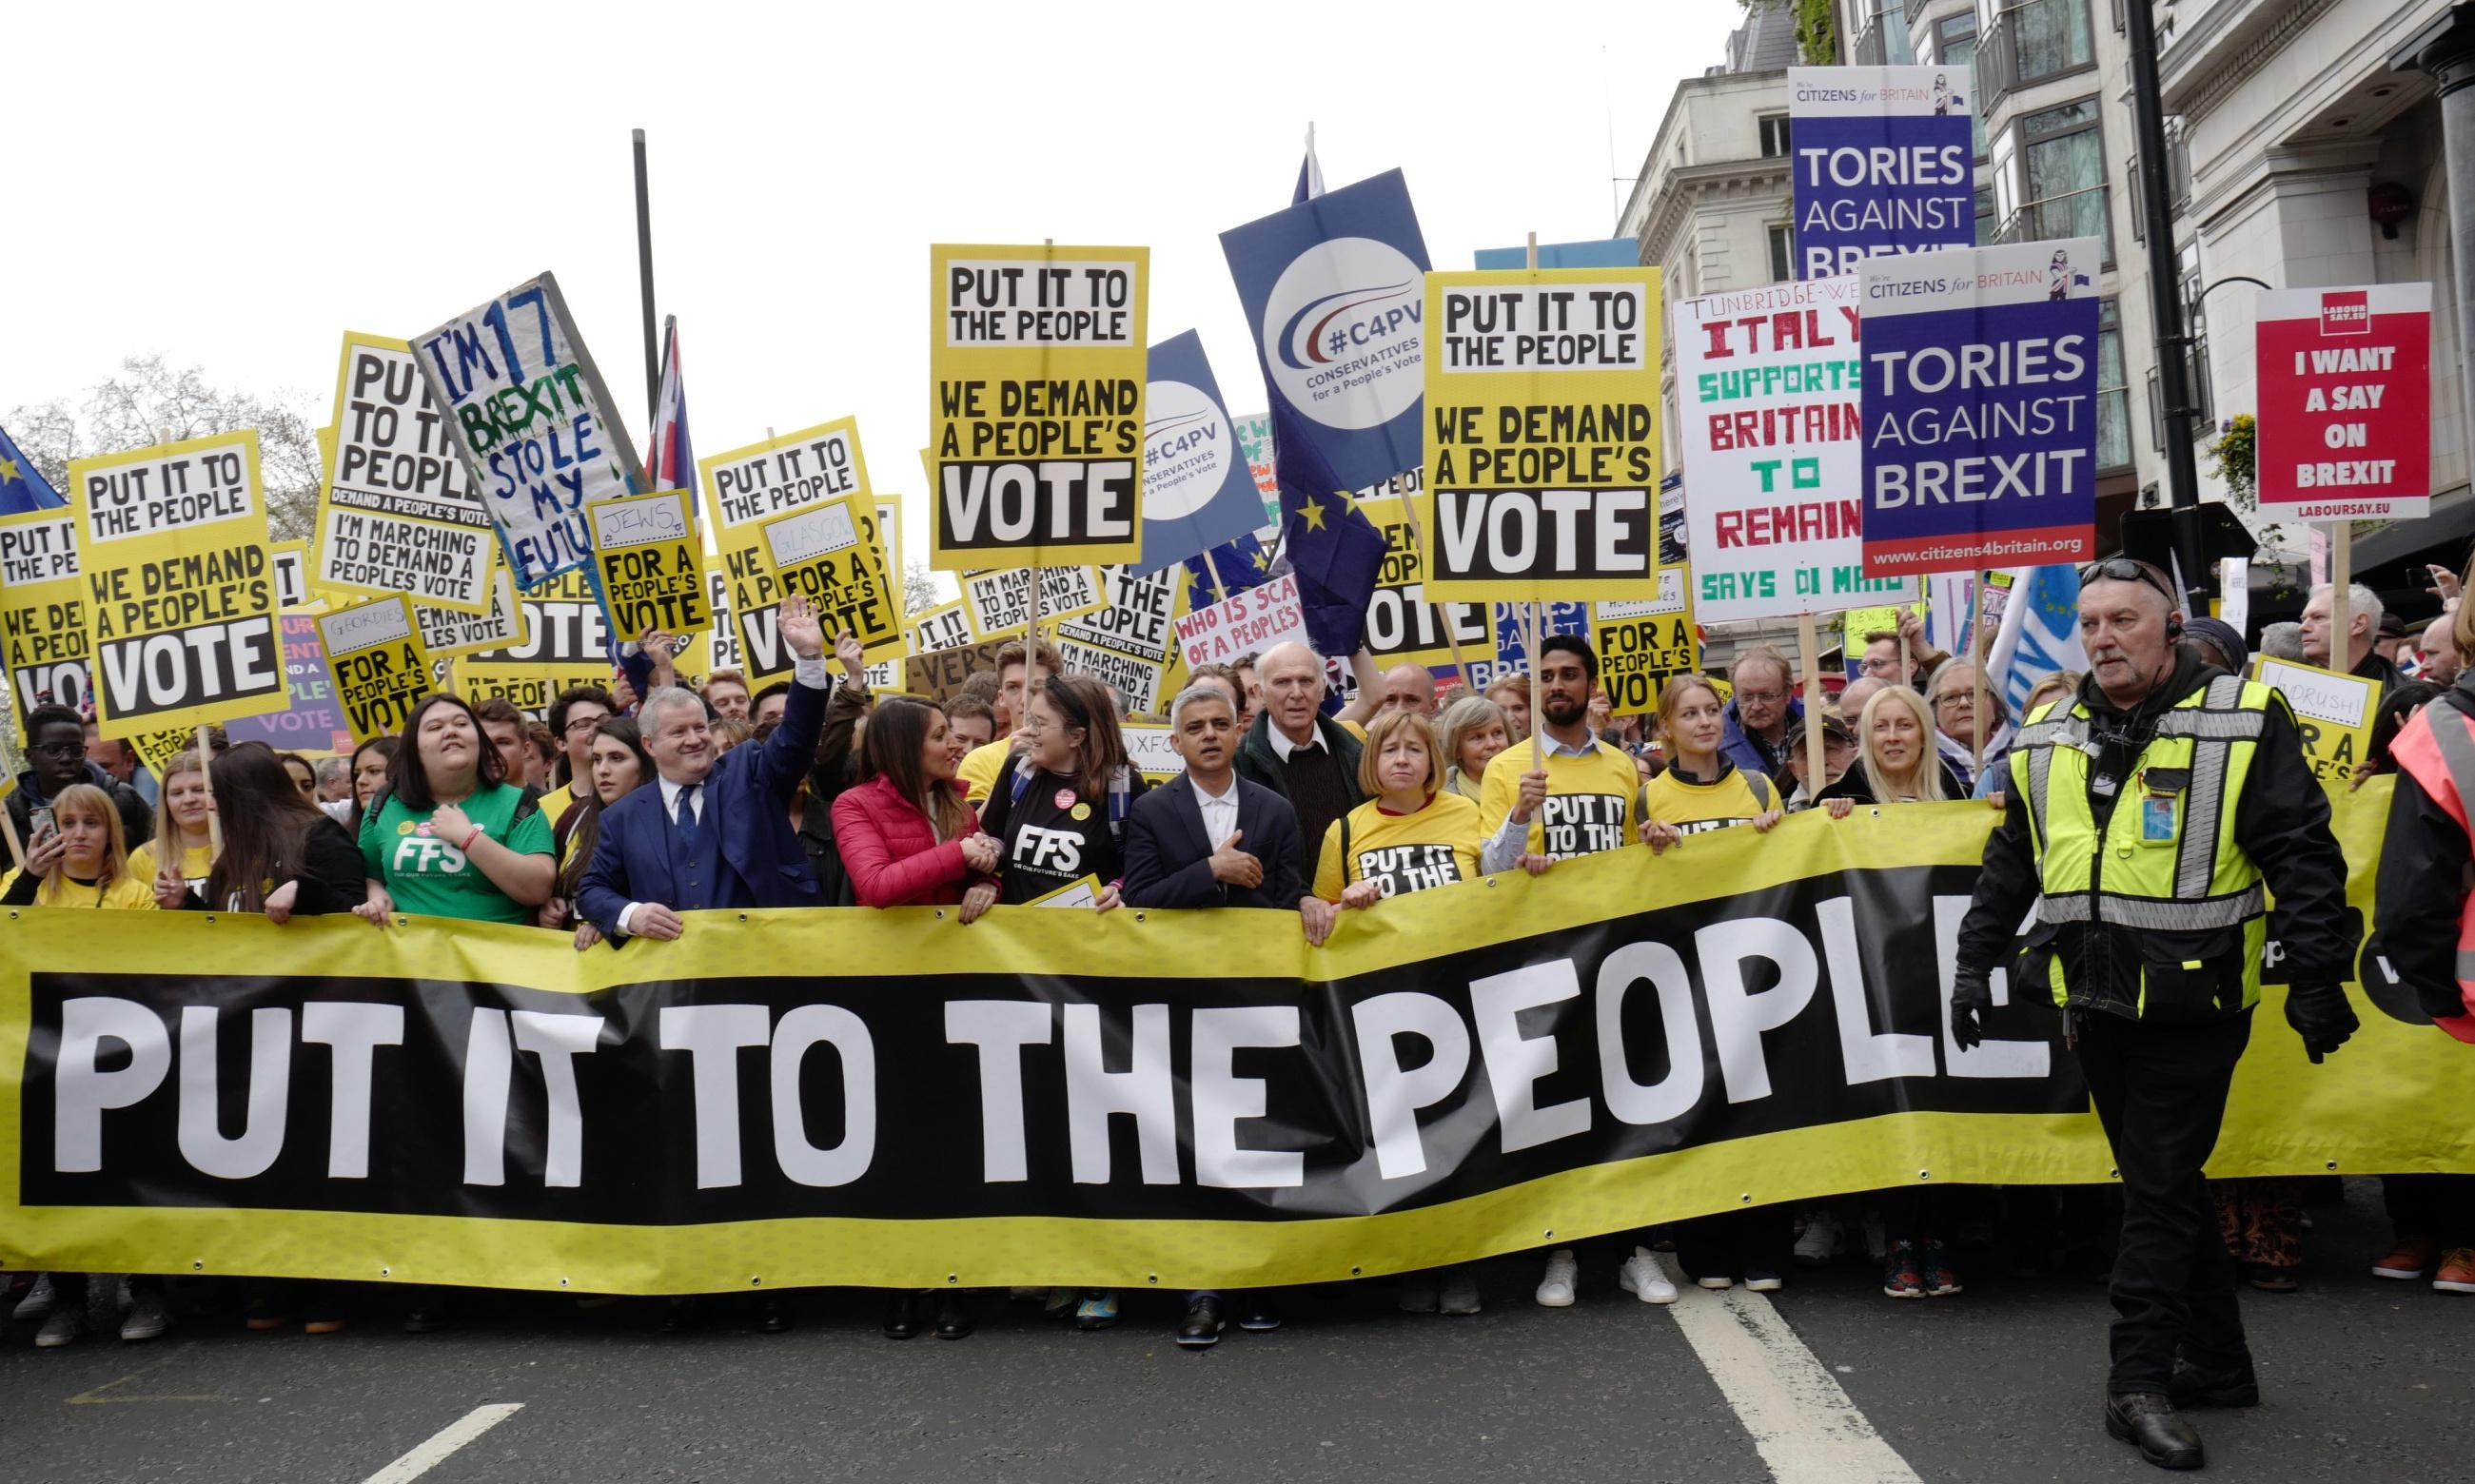 The Observer view: the people have marched; now MPs must take up the challenge